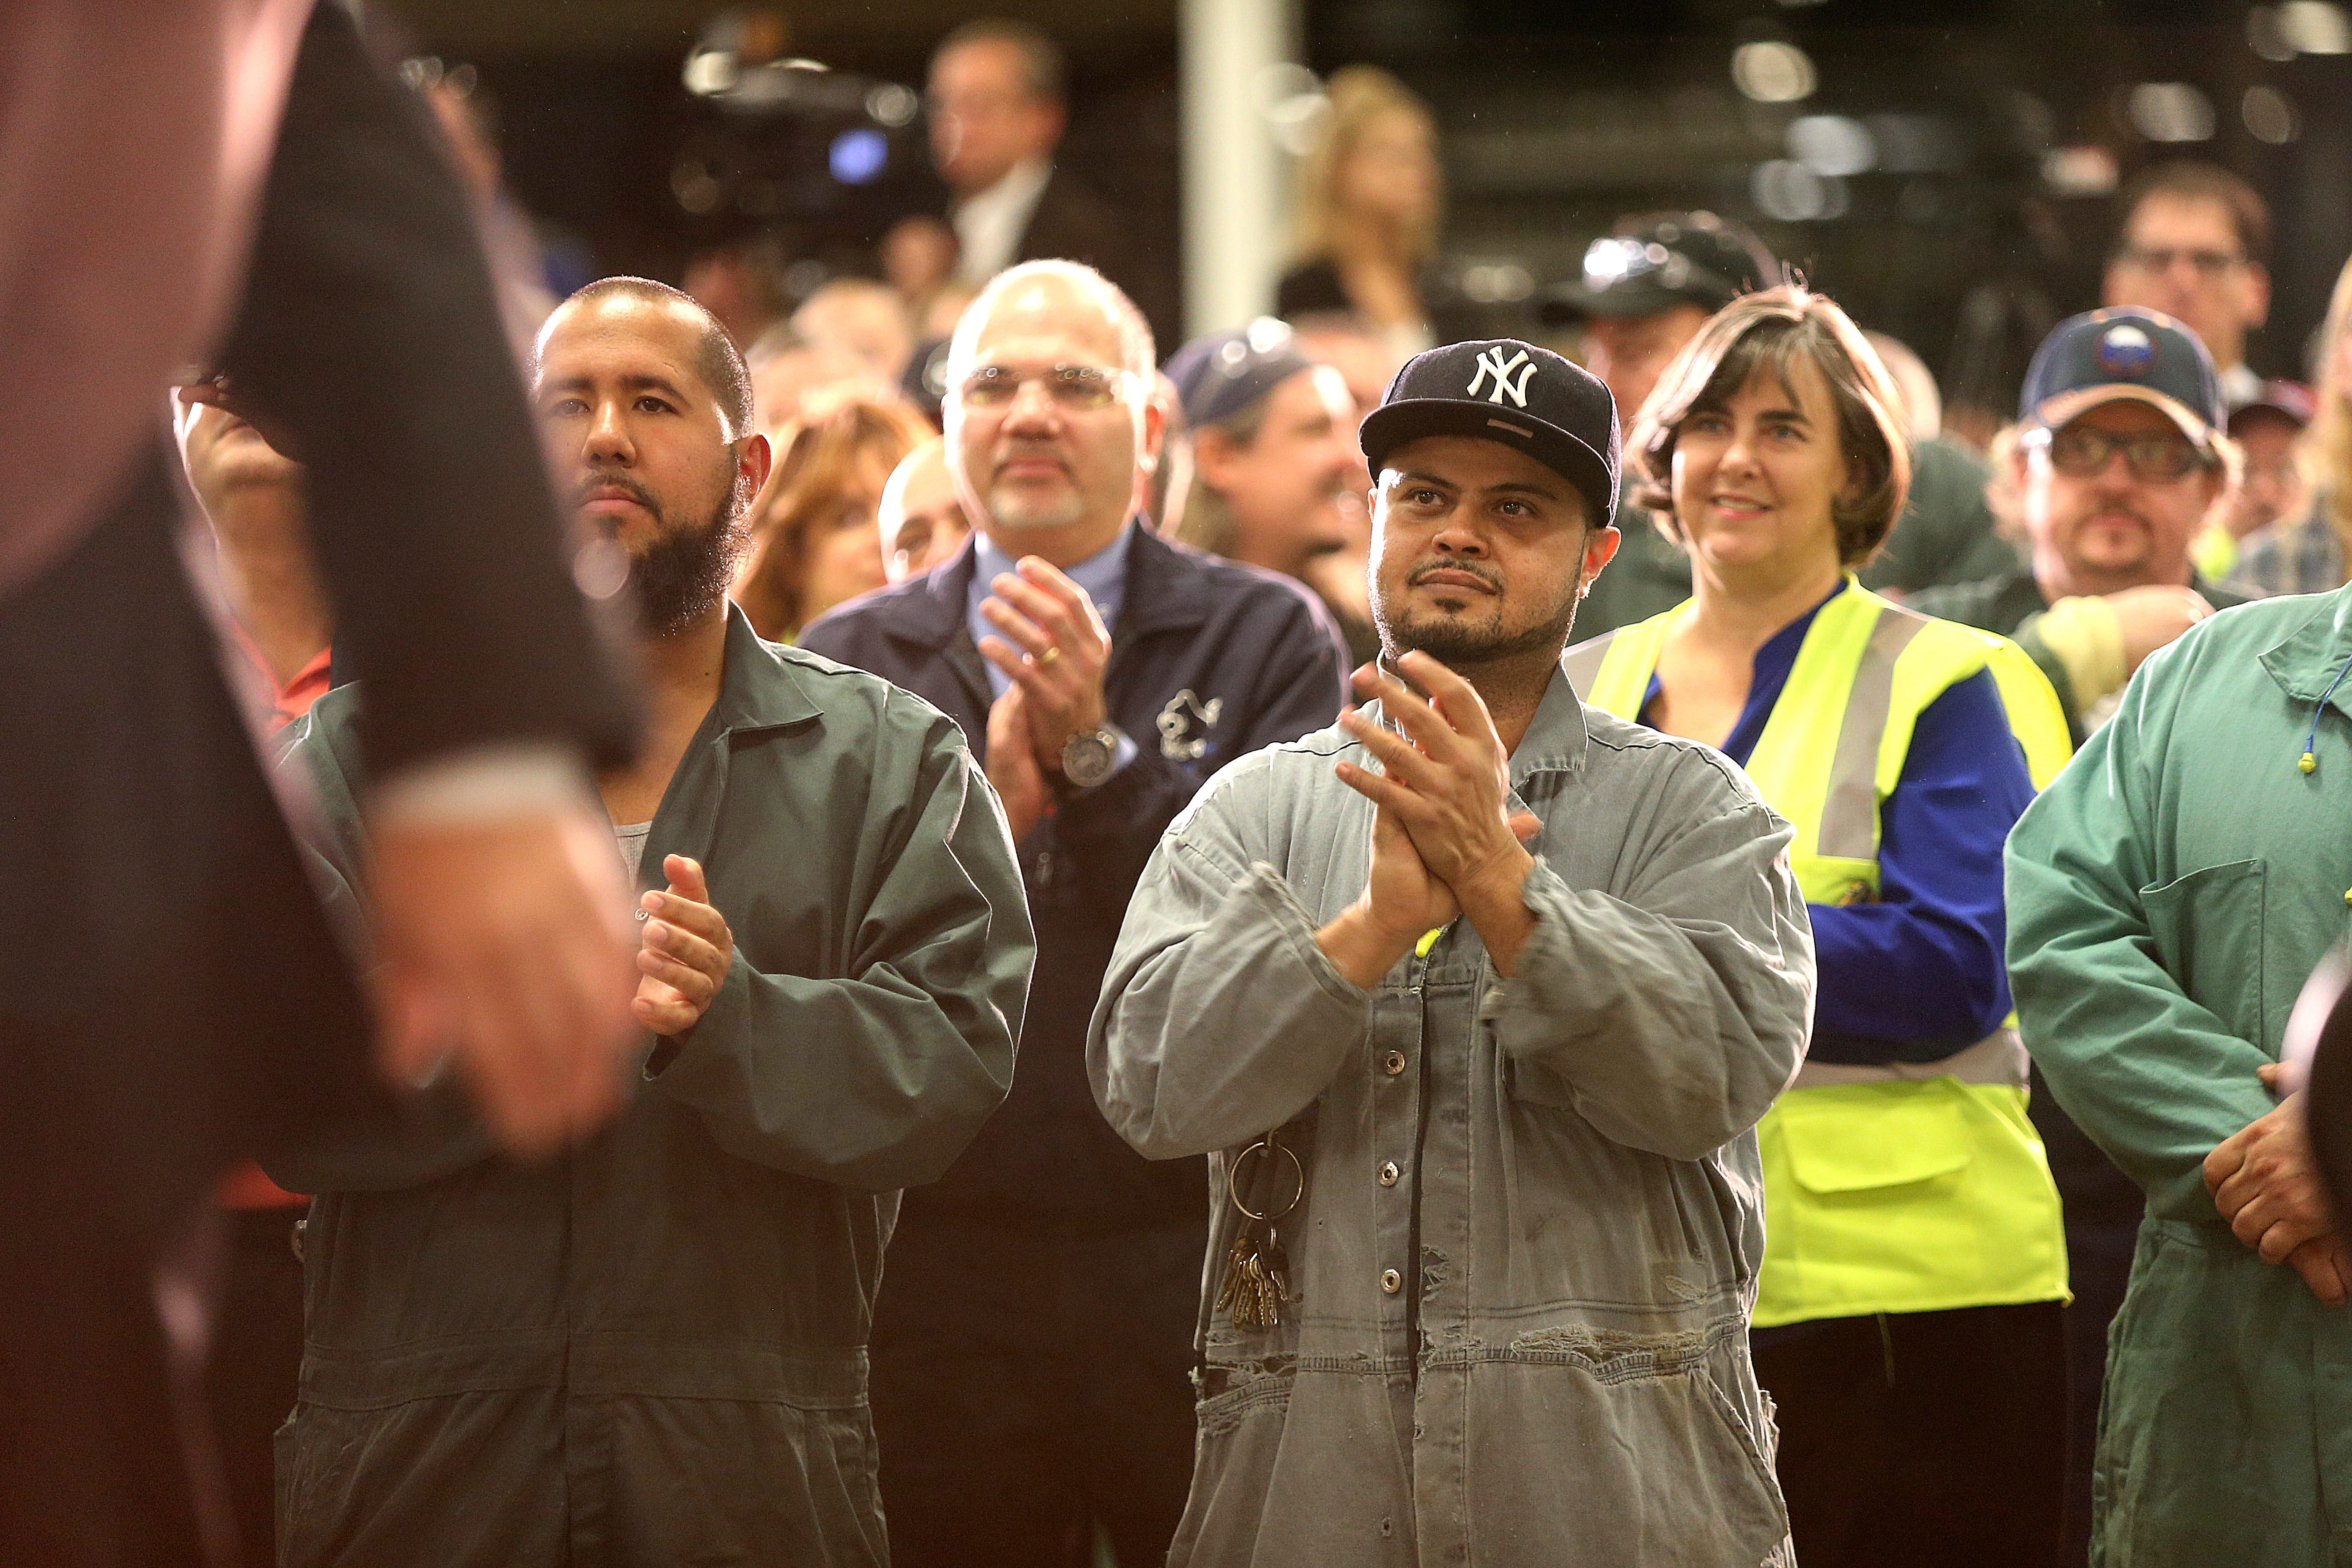 Workers at the Ford Stamping Plant in Hamburg applaud Gov. Andrew M. Cuomo during an announcement that Ford would add workers and invest in their plant.